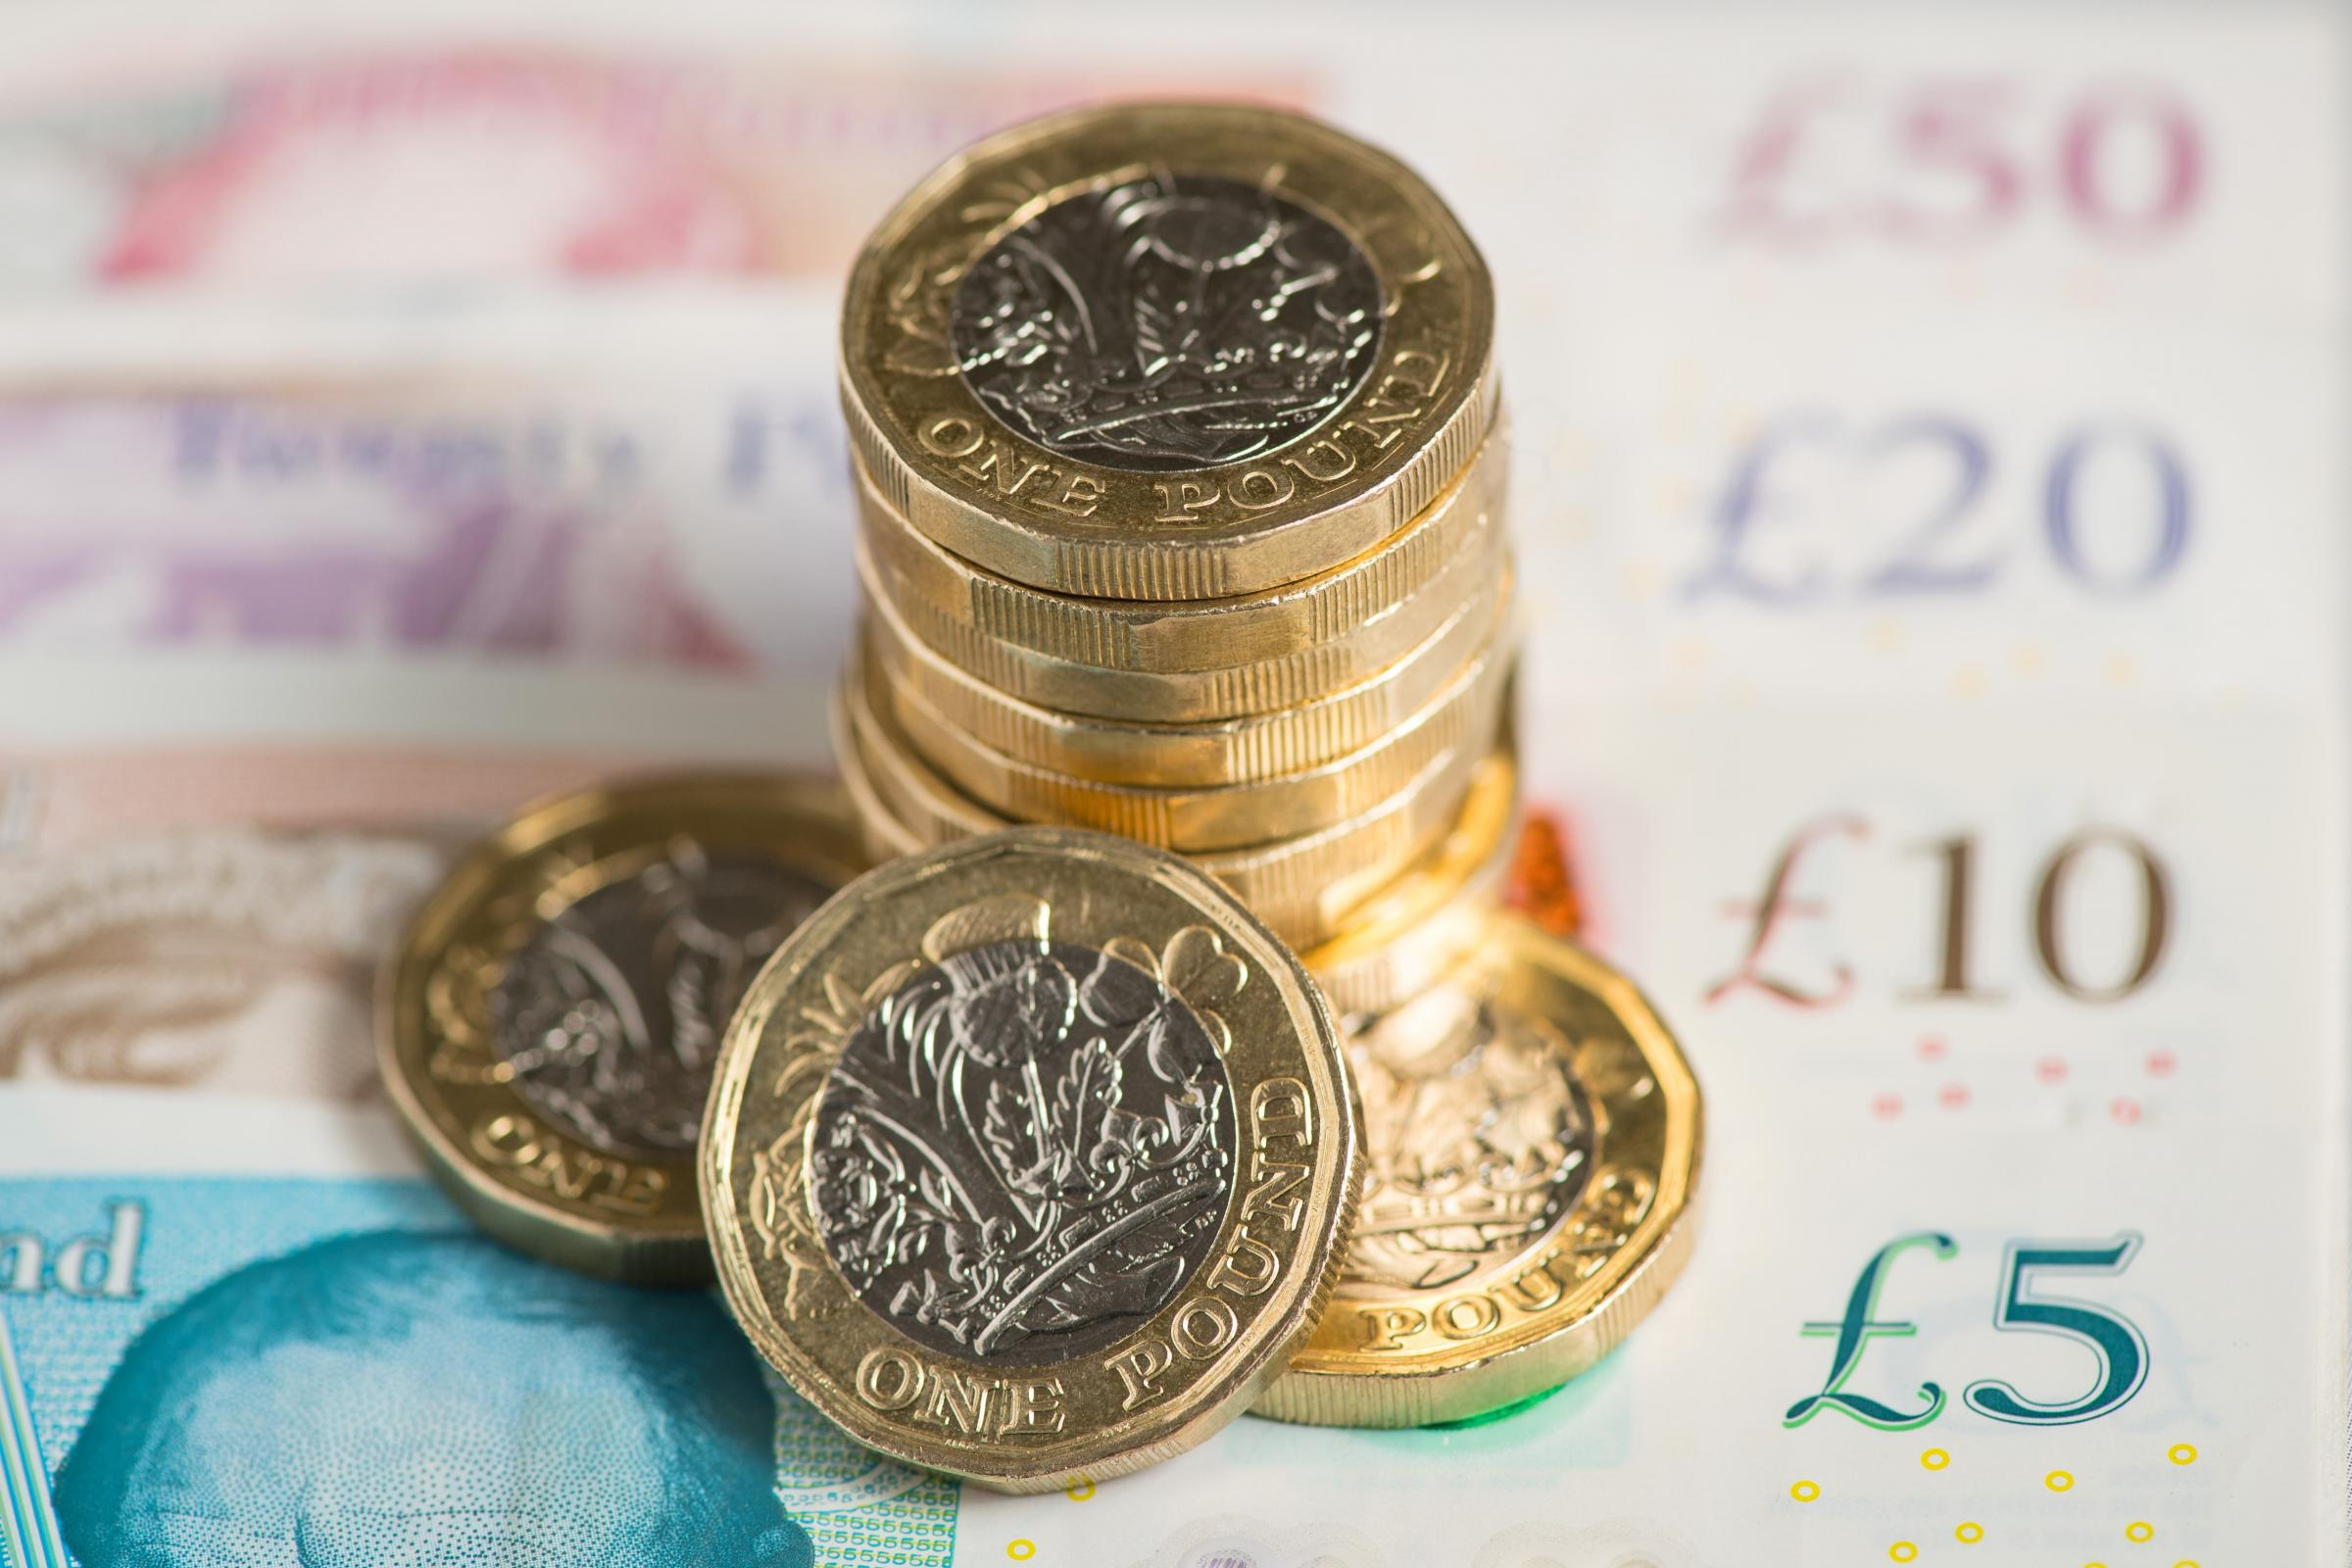 New services to meet people's cash needs on way, says FCA boss